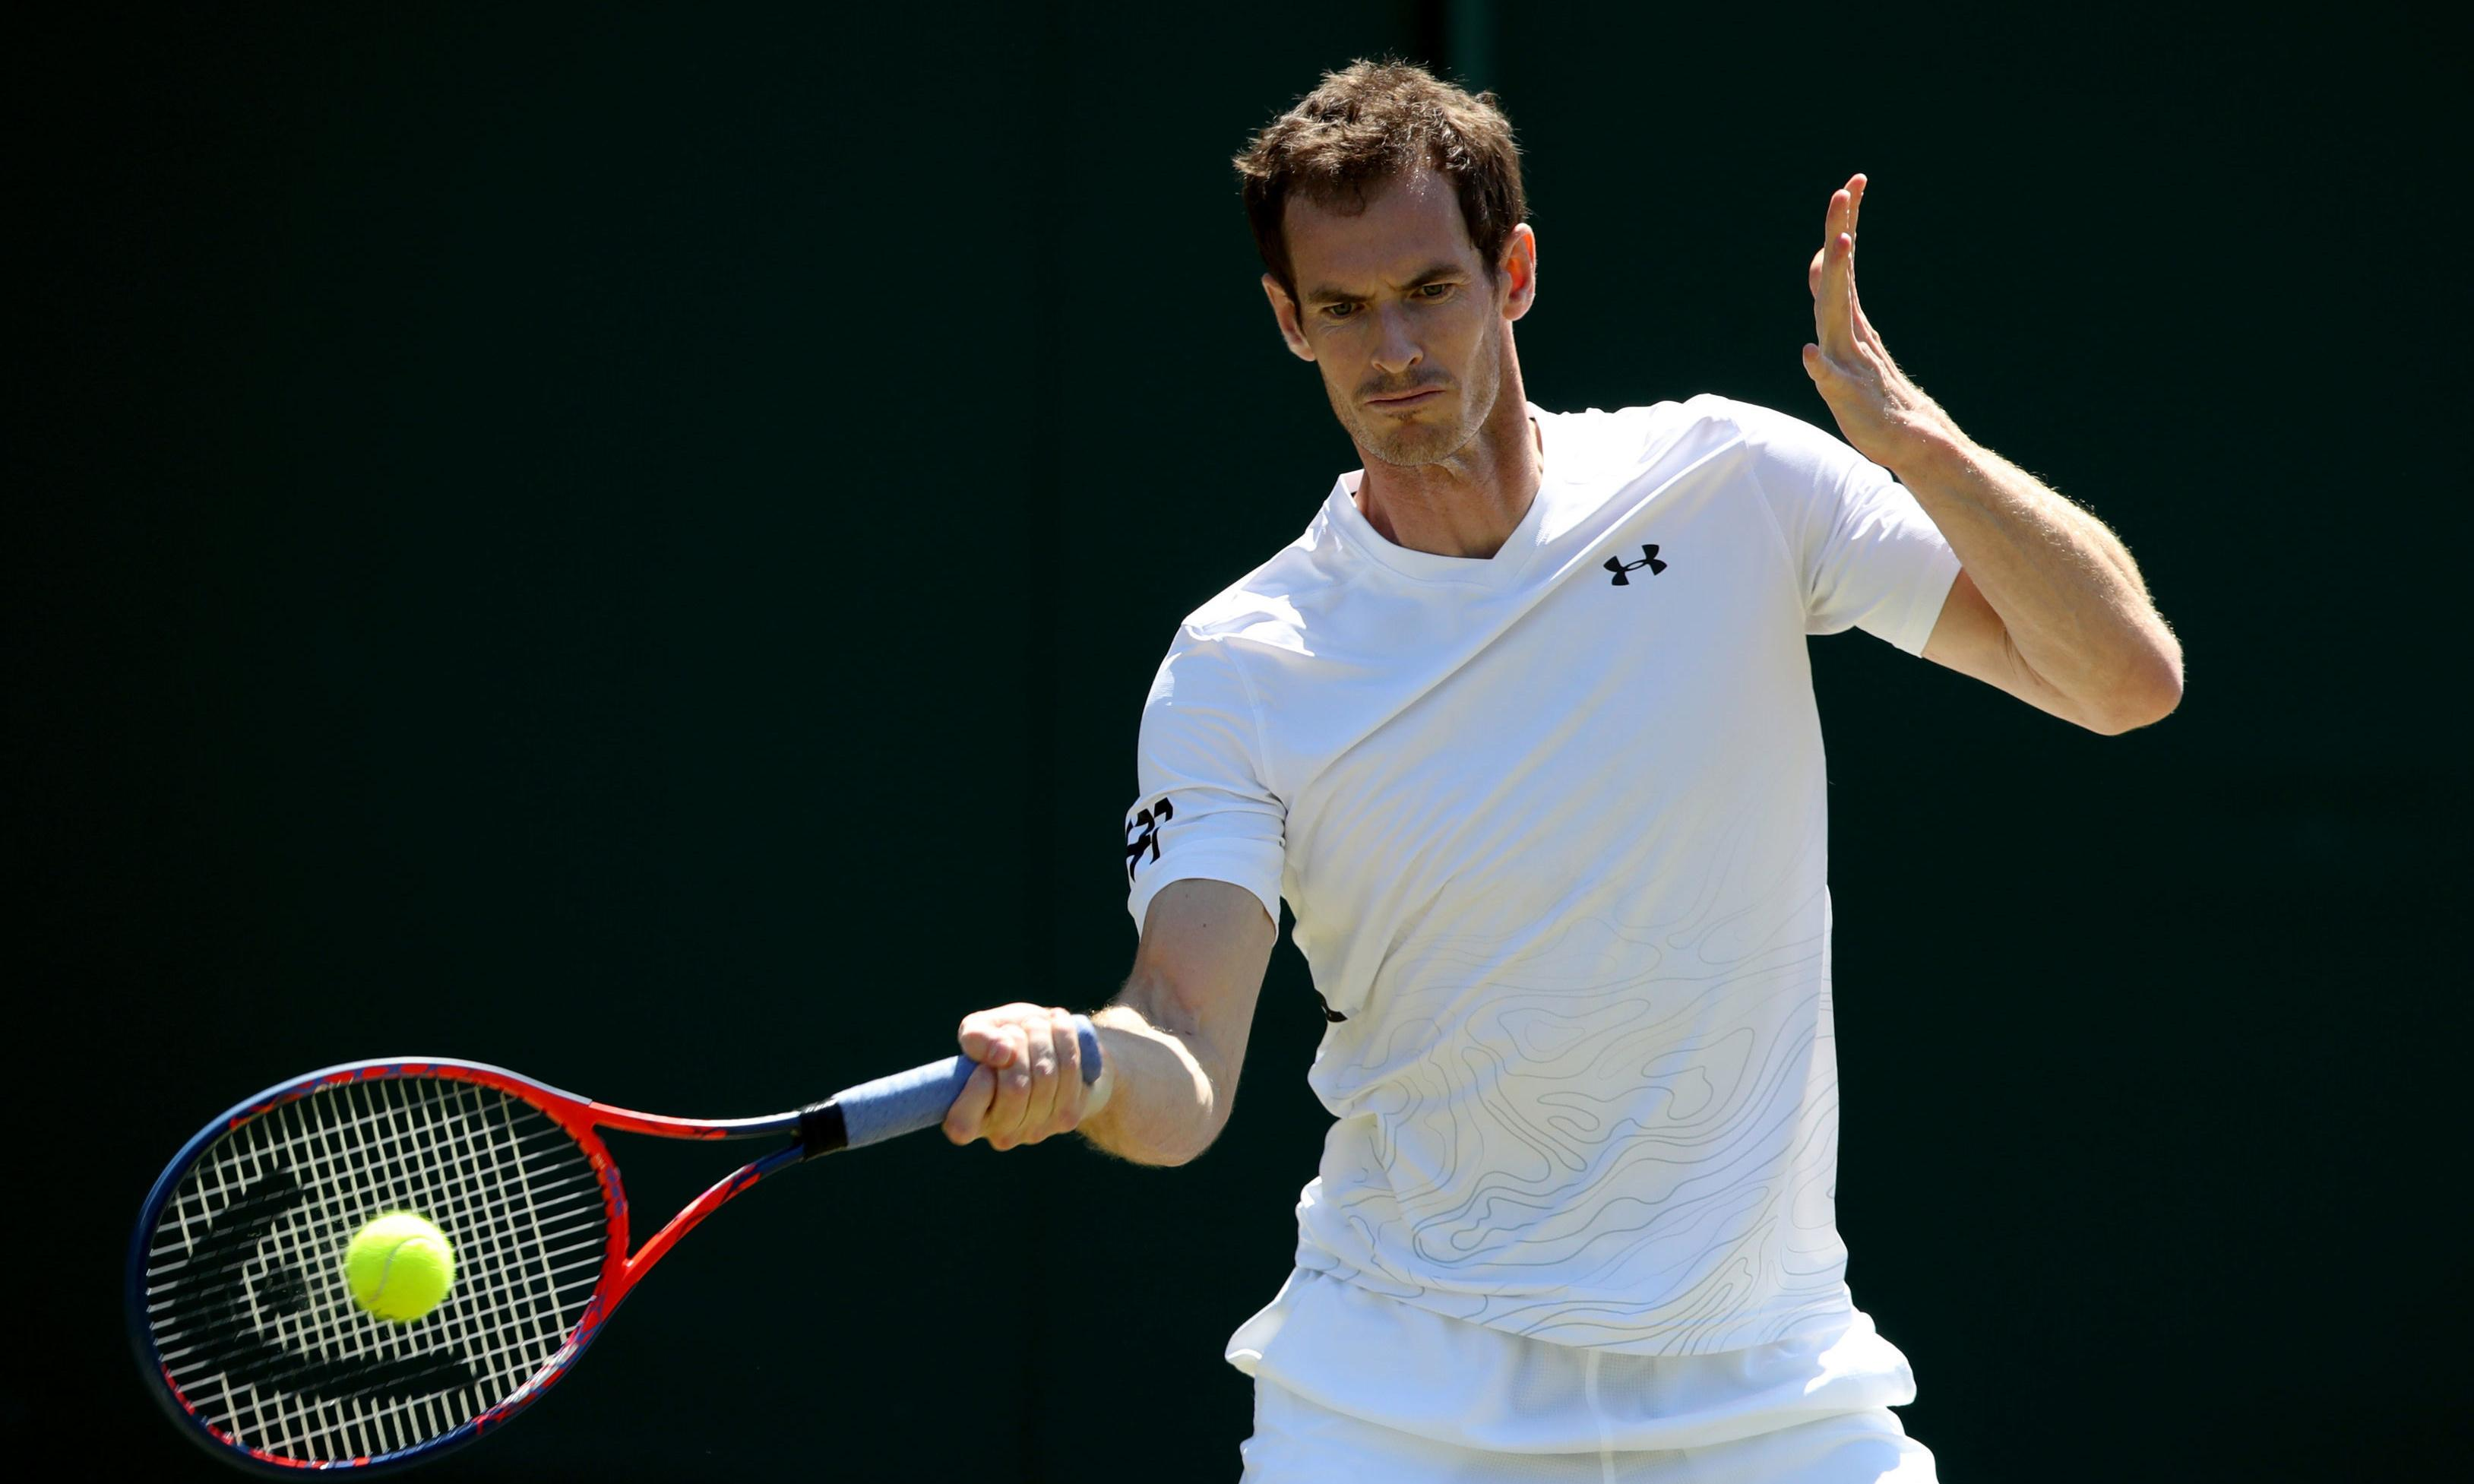 Andy Murray to make Queen's doubles comeback against world's best